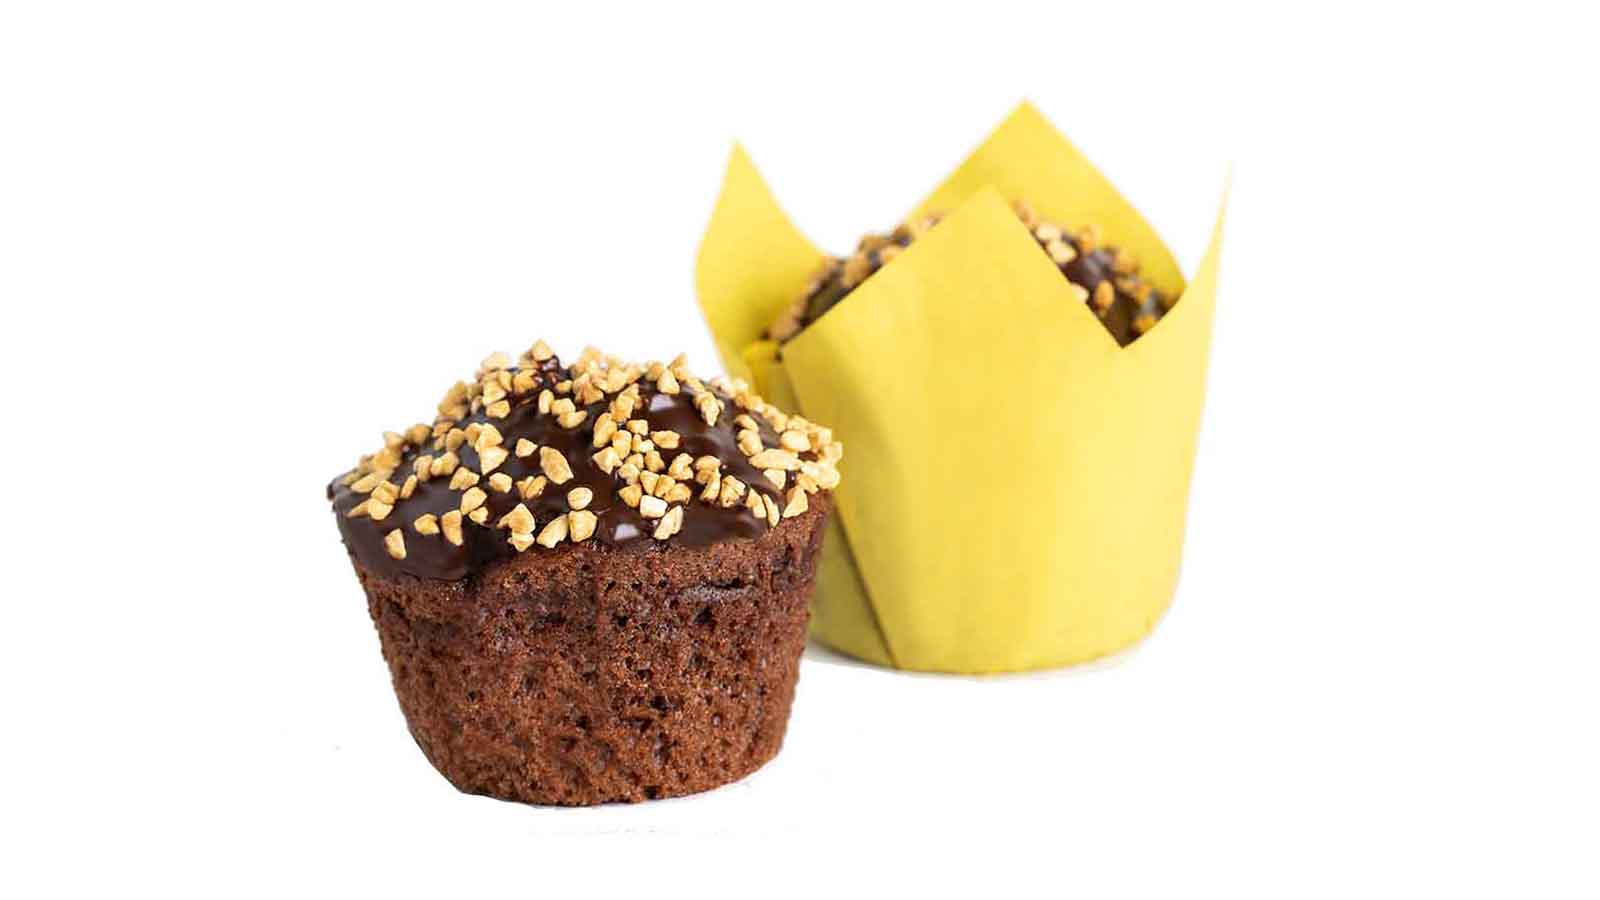 Muffin with Chocolate&Banana filling 80g